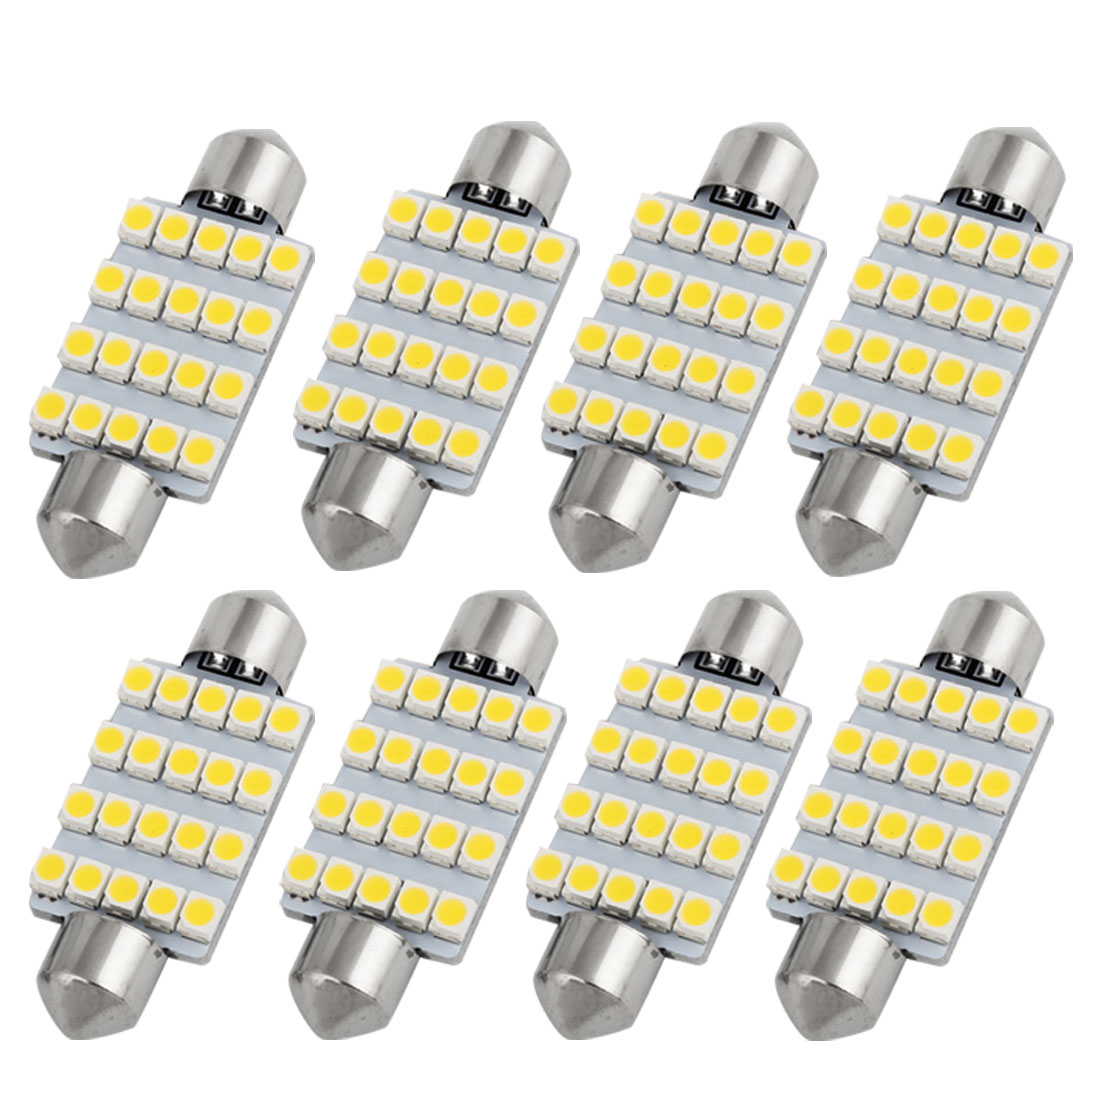 8pcs 41mm 20 SMD 1210 LED Warm White Festoon Dome Light Lamp 212 211-2 Internal